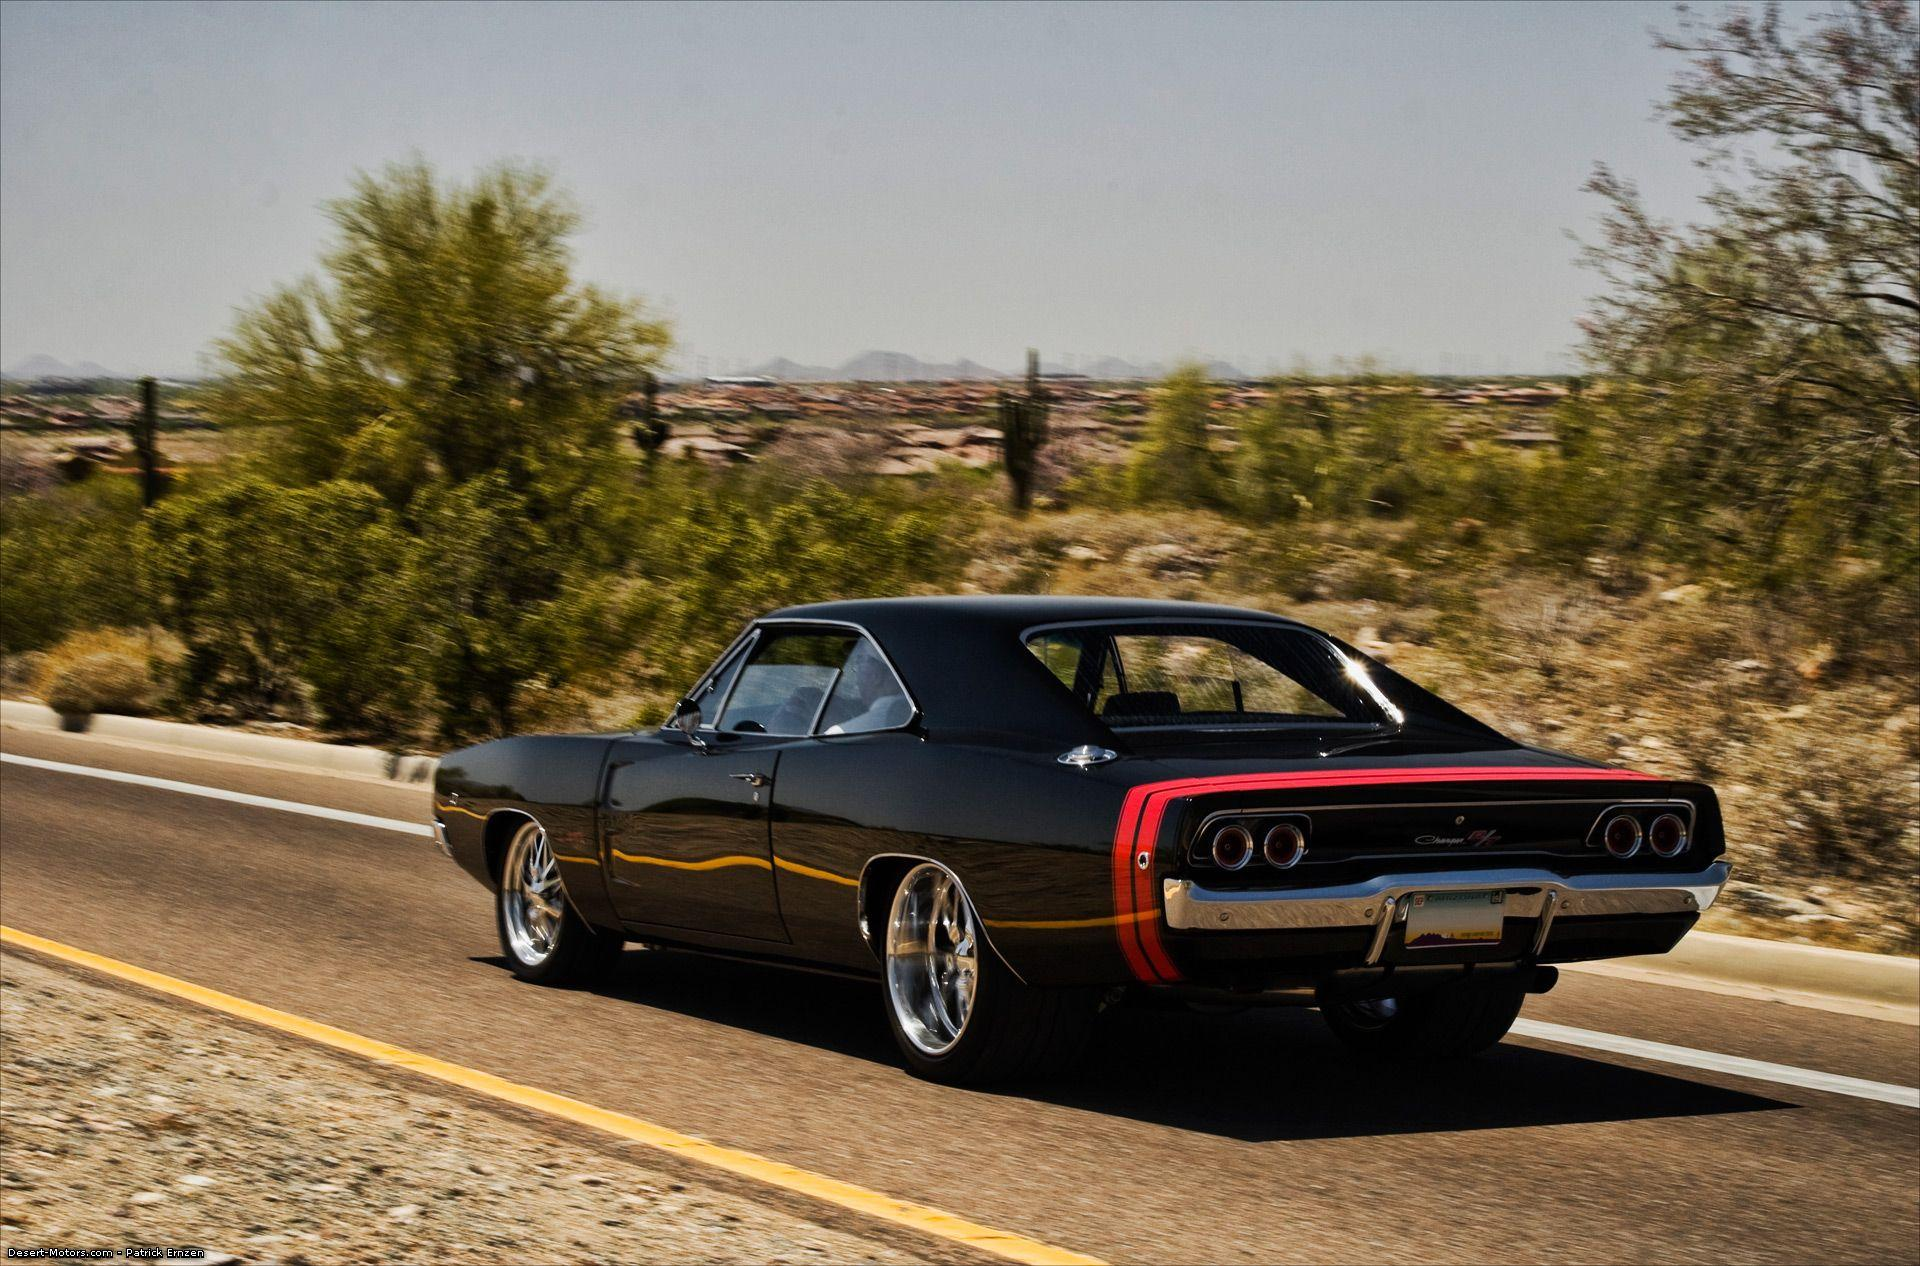 Cars Dodge Charger Rt 1920x1266 – 100% Quality HD Wallpapers